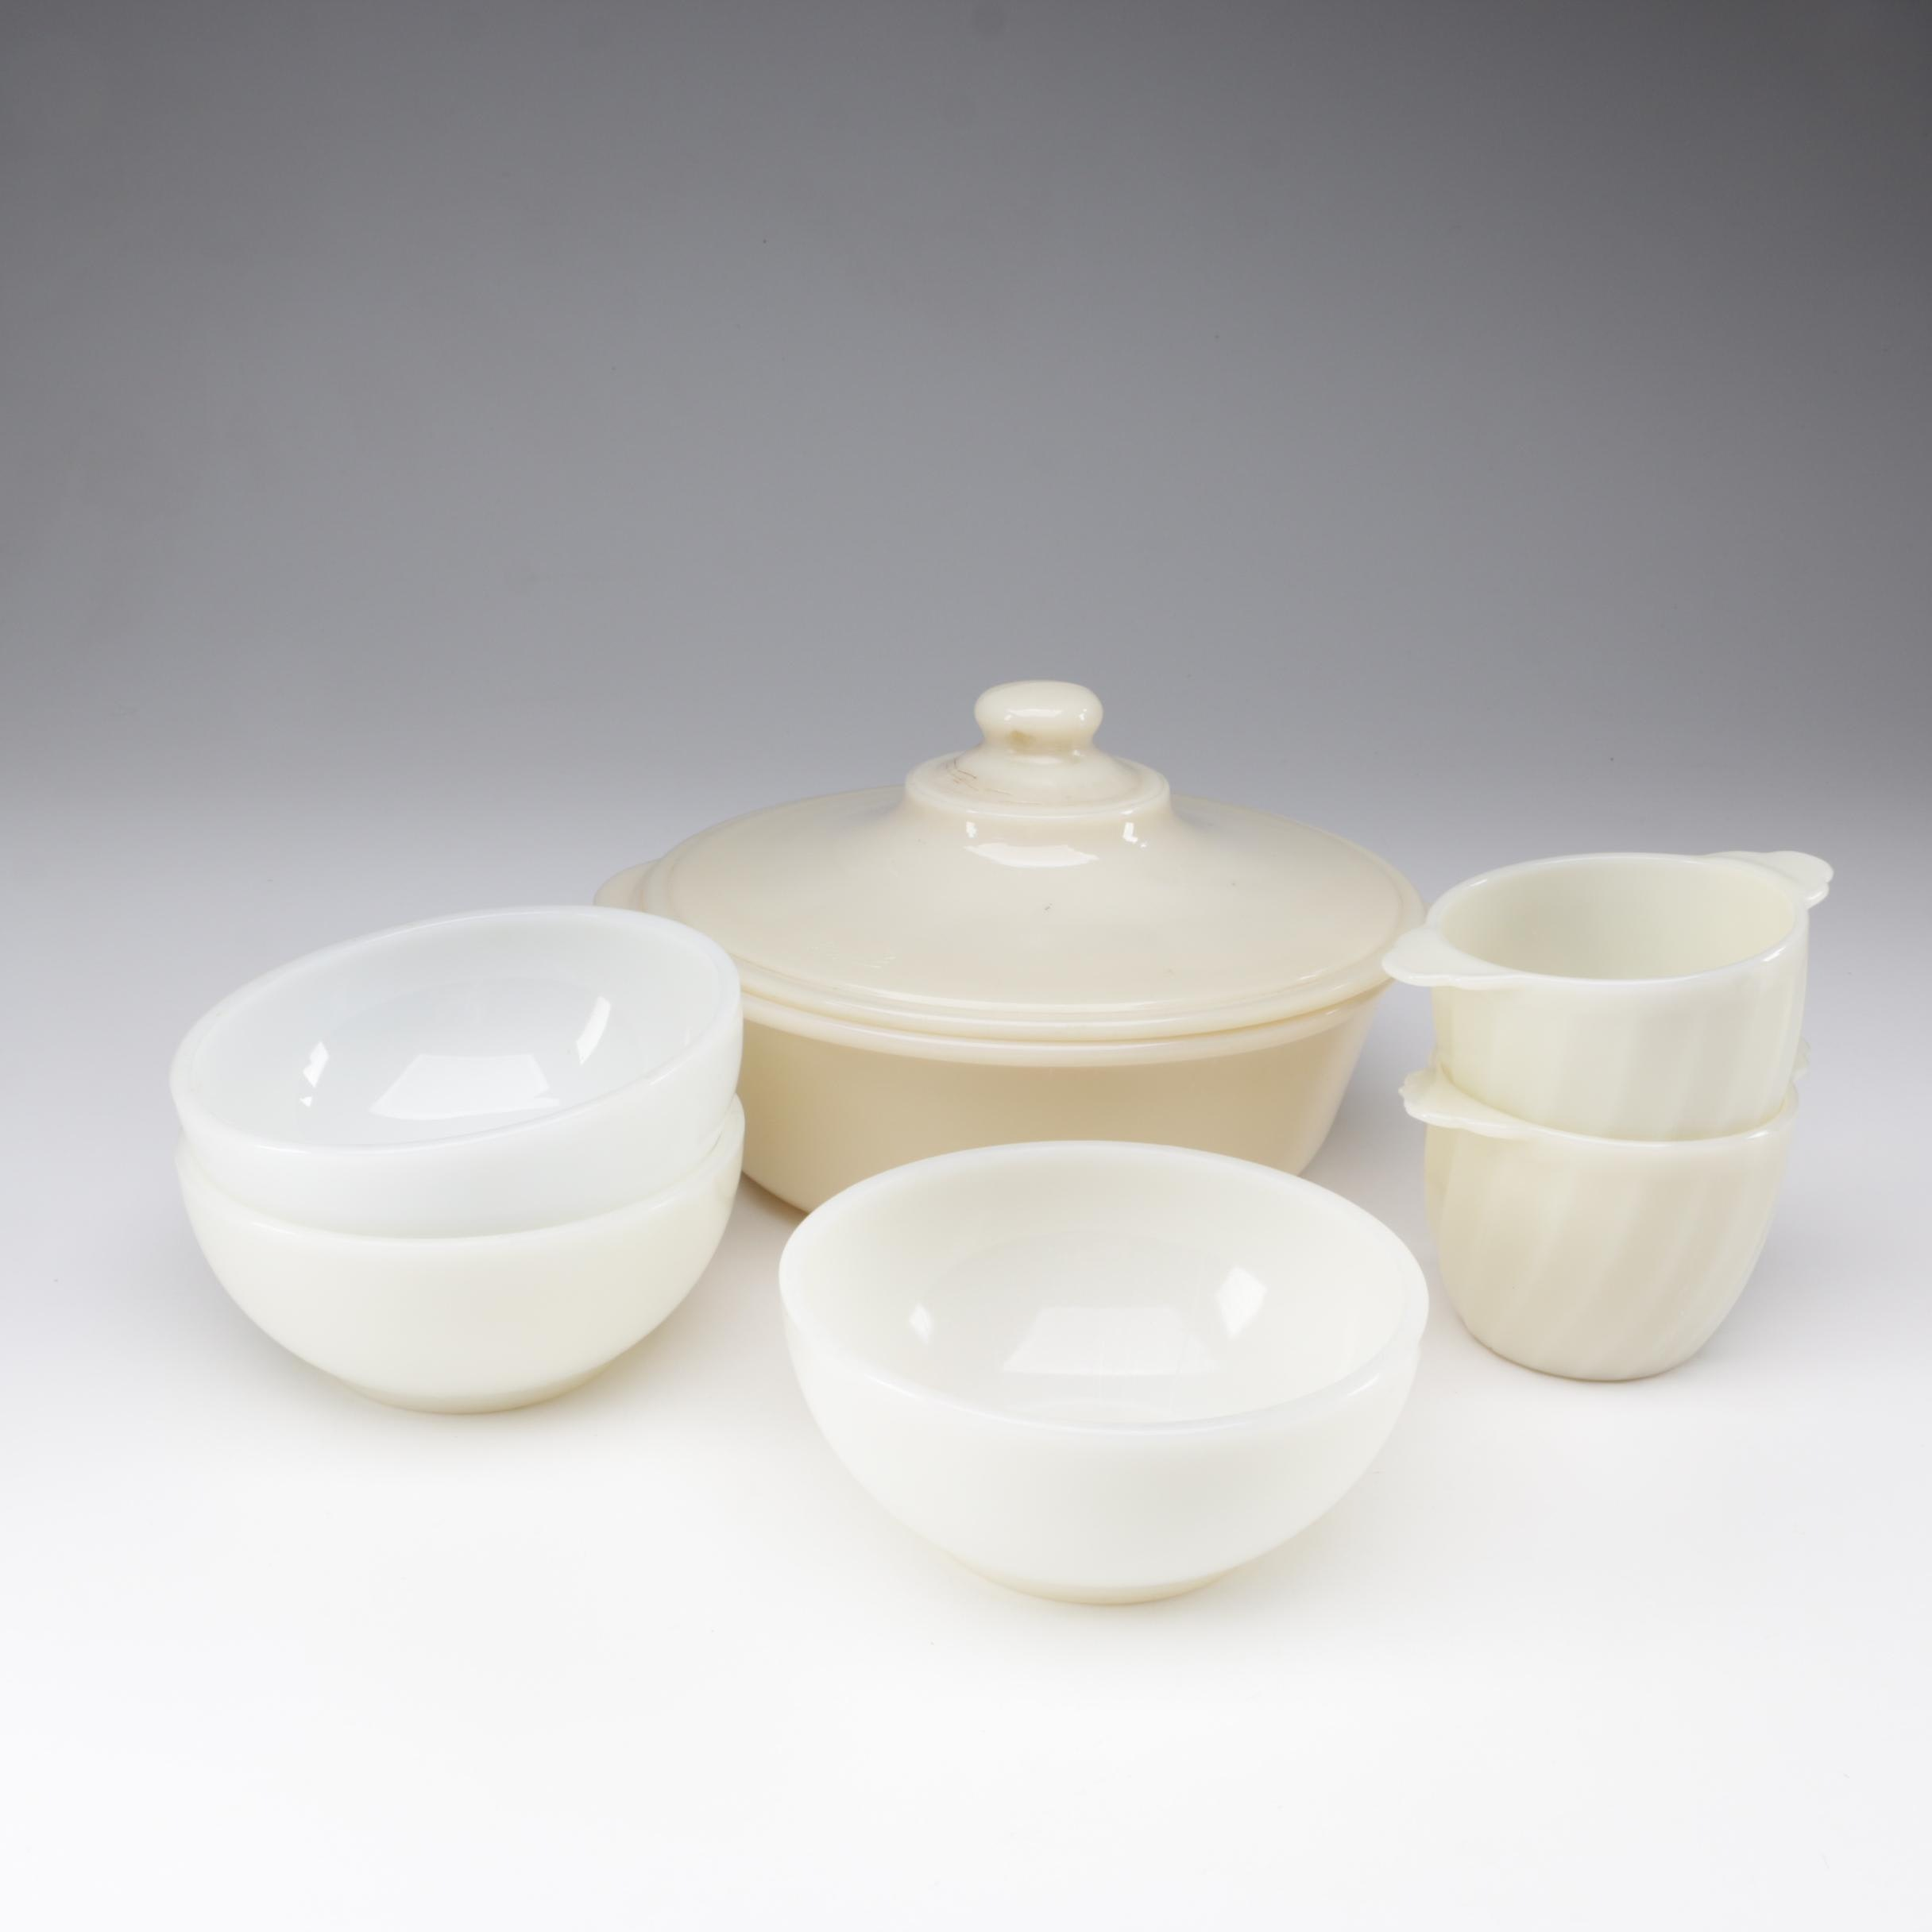 """Fire-King Glass Tableware Including """"Swirl Ivory"""" and """"Anchorwhite"""", 1950s/1960s"""